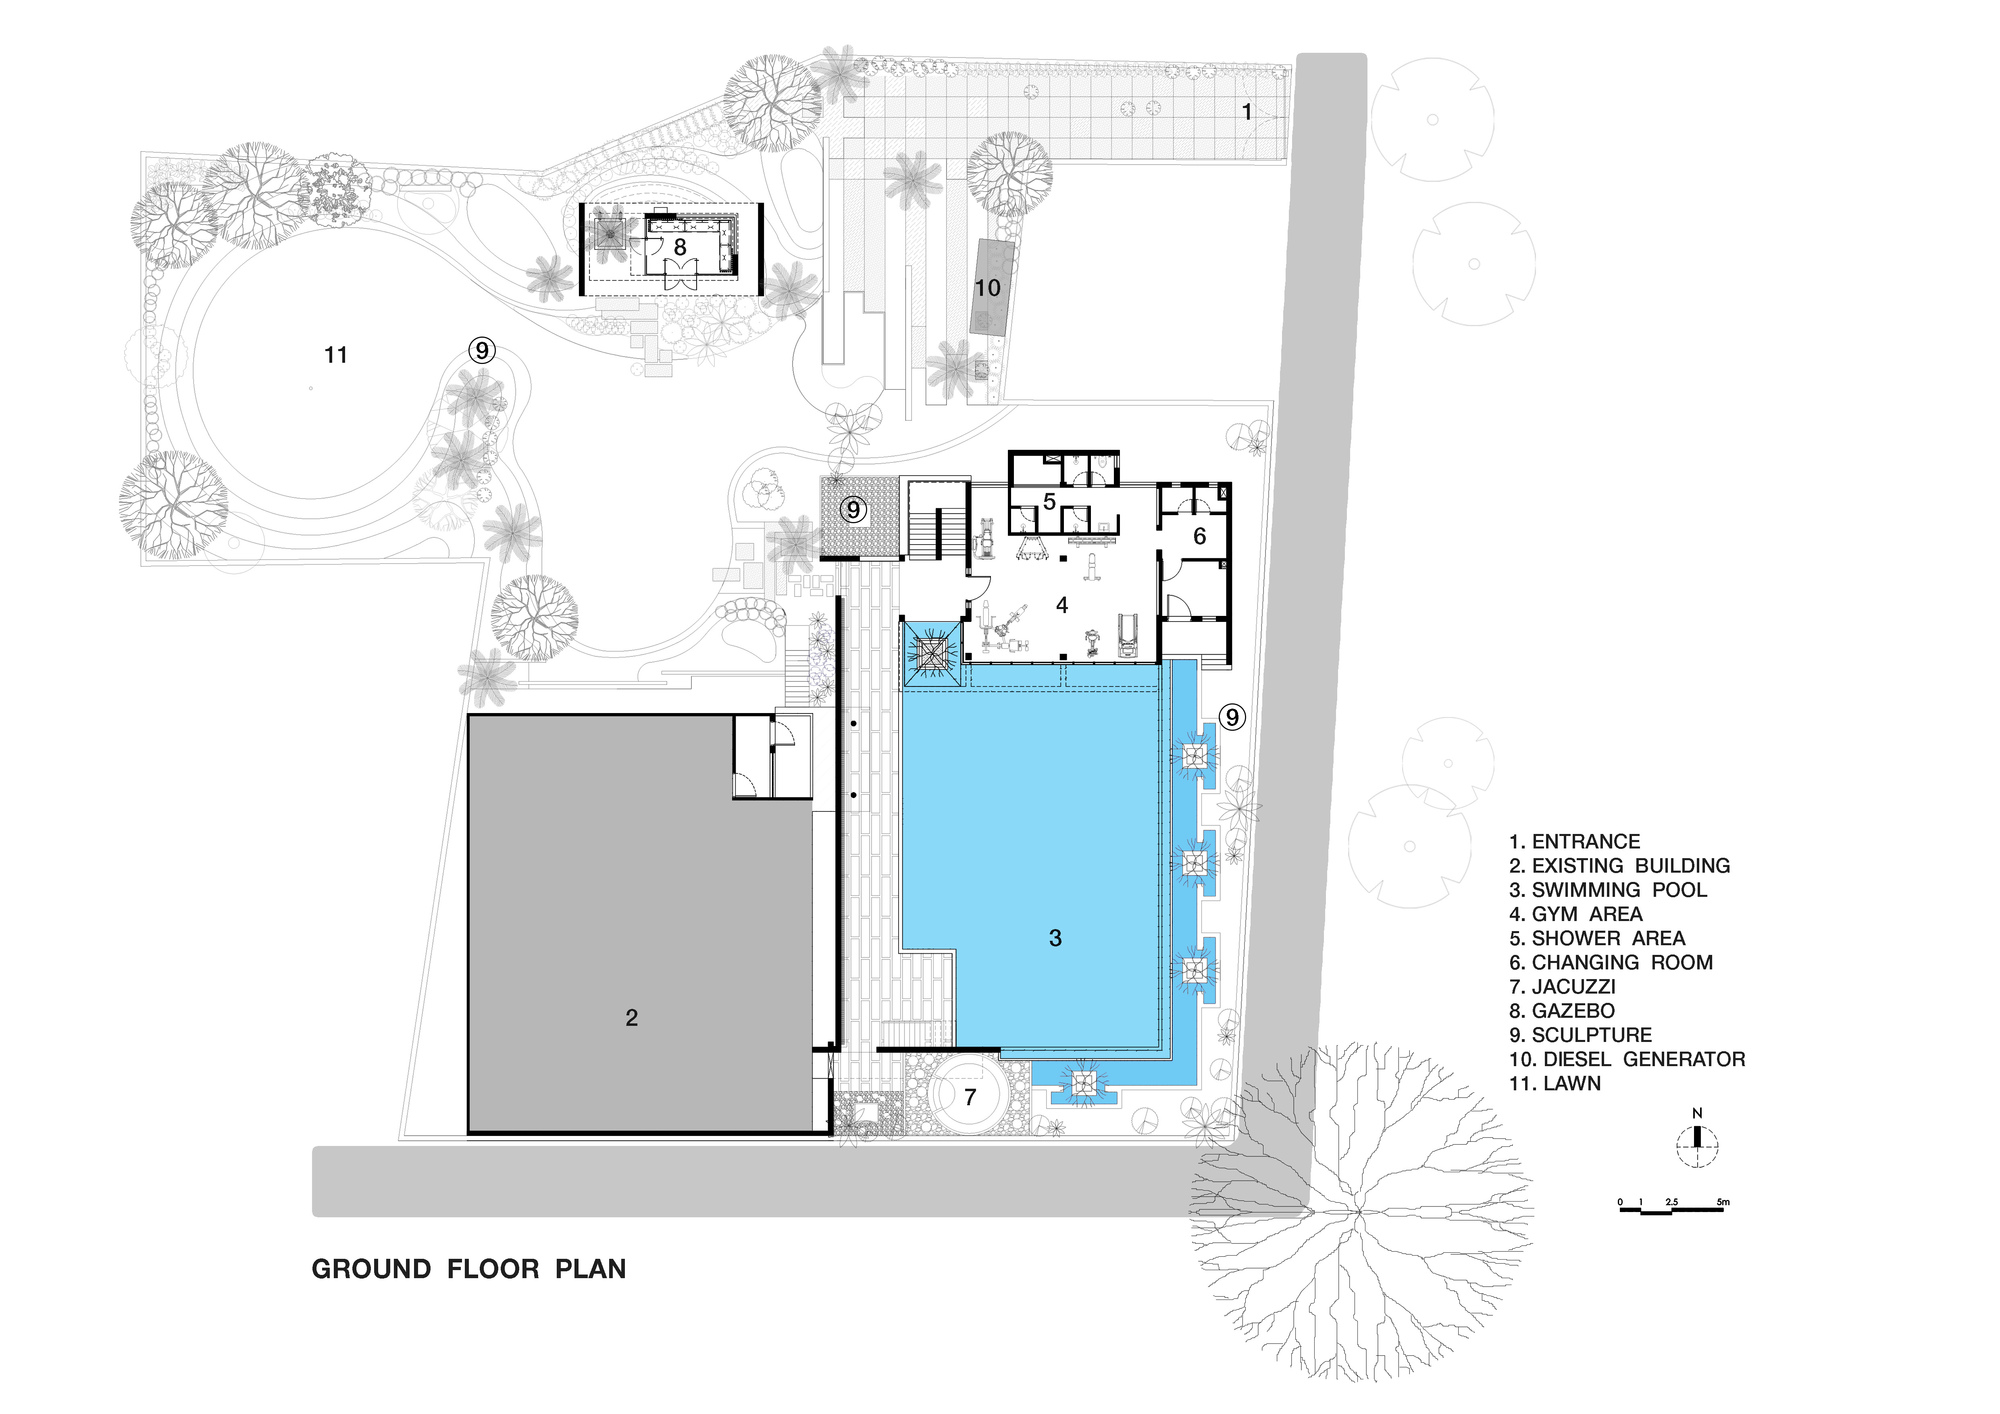 Gallery of pool house abin design studio 21 for Plan for swimming pool